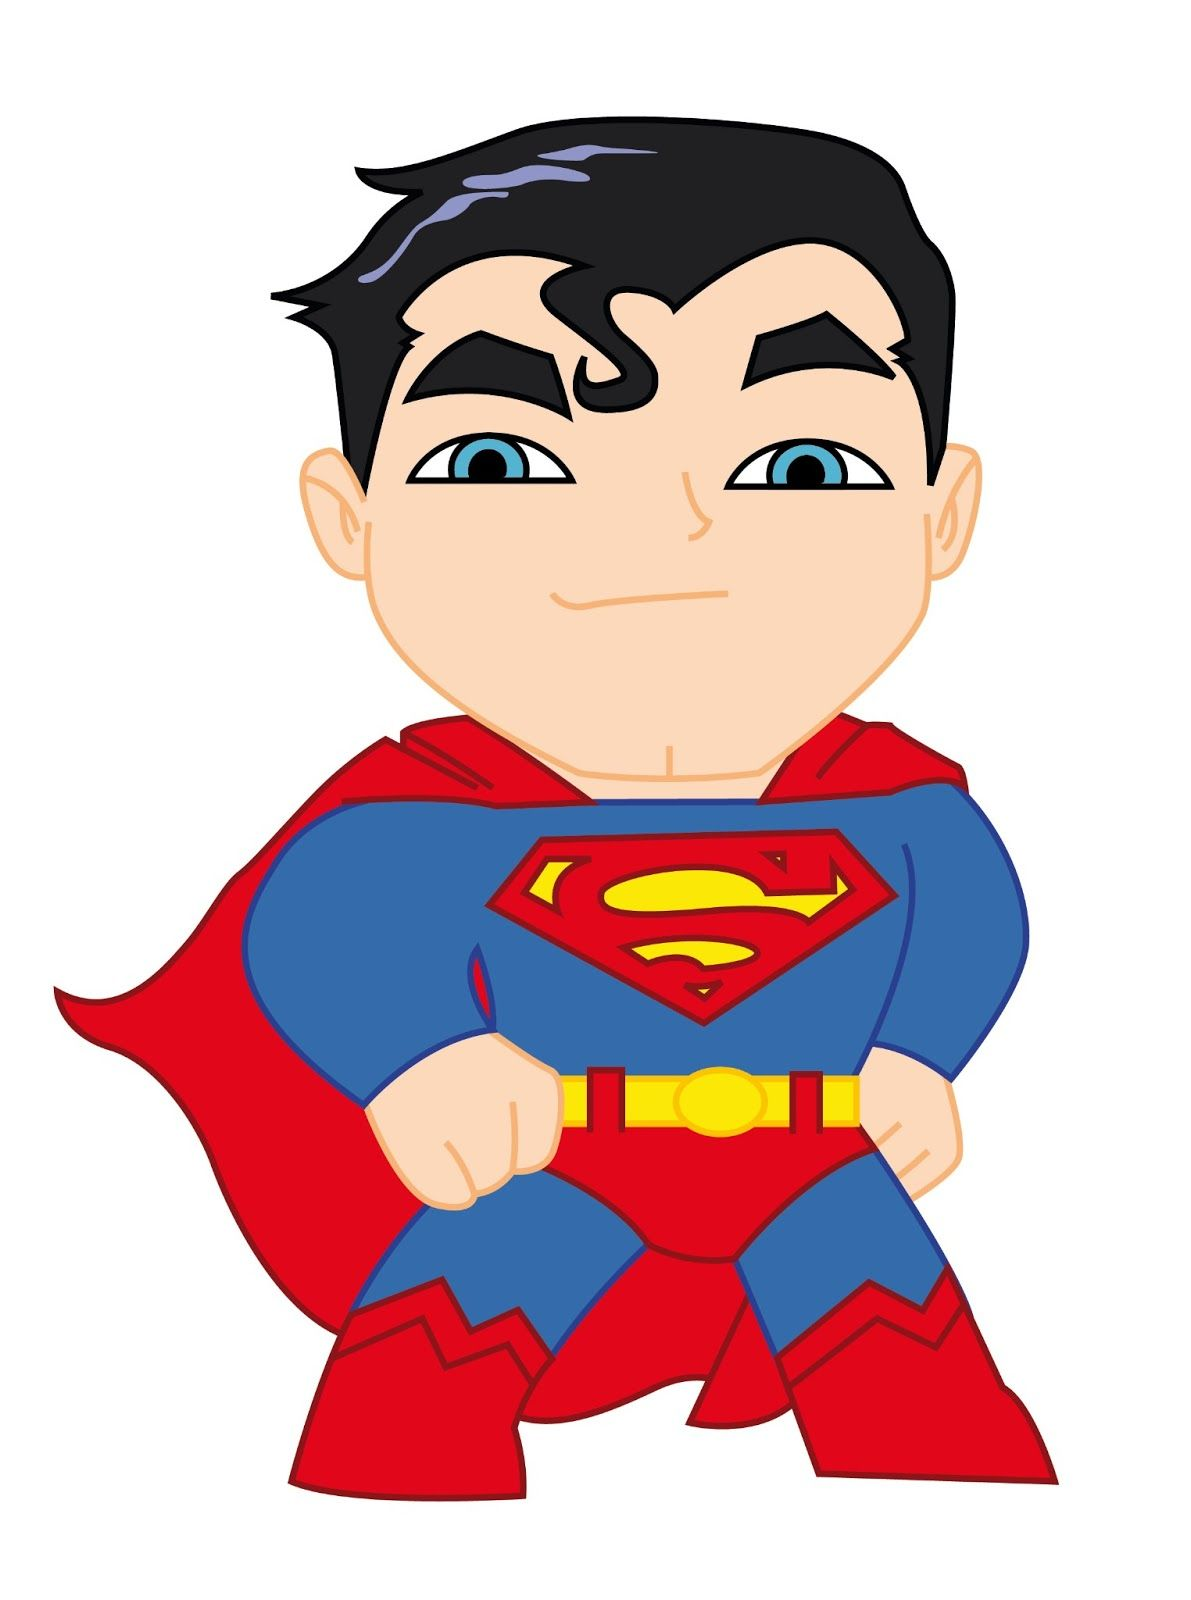 Superman background clipart picture transparent library Superman Background Cute Superman Chibi Important Wallpapers ... picture transparent library